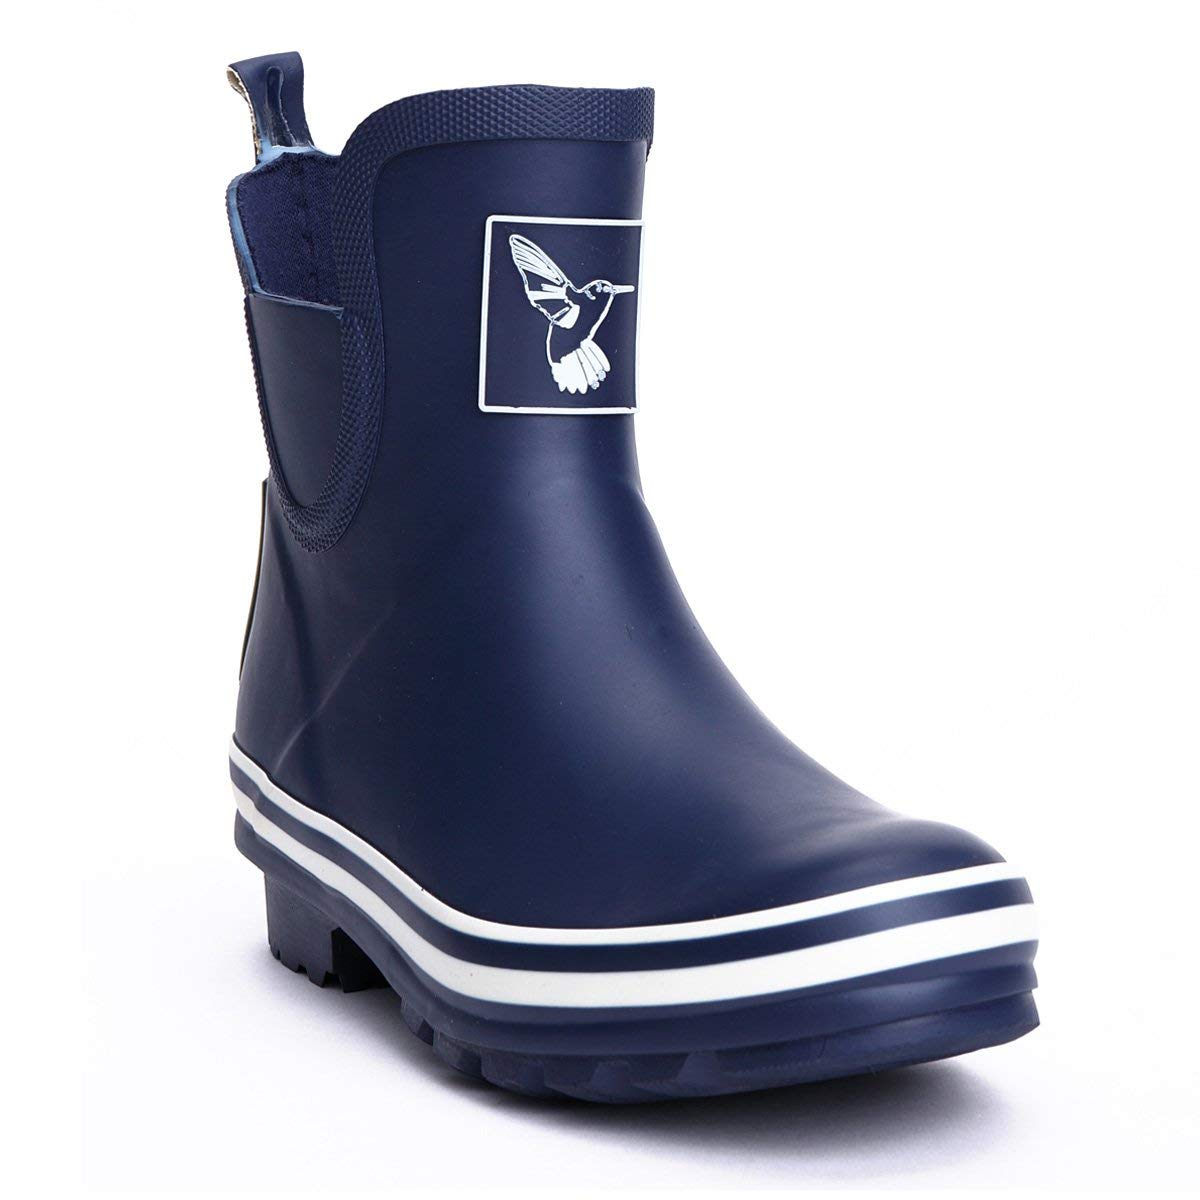 fab0757af08a Get Quotations · Evercreatures Women s Rain Boot Ankle Boots Meadow Wellies  Garden Boot UK Brand